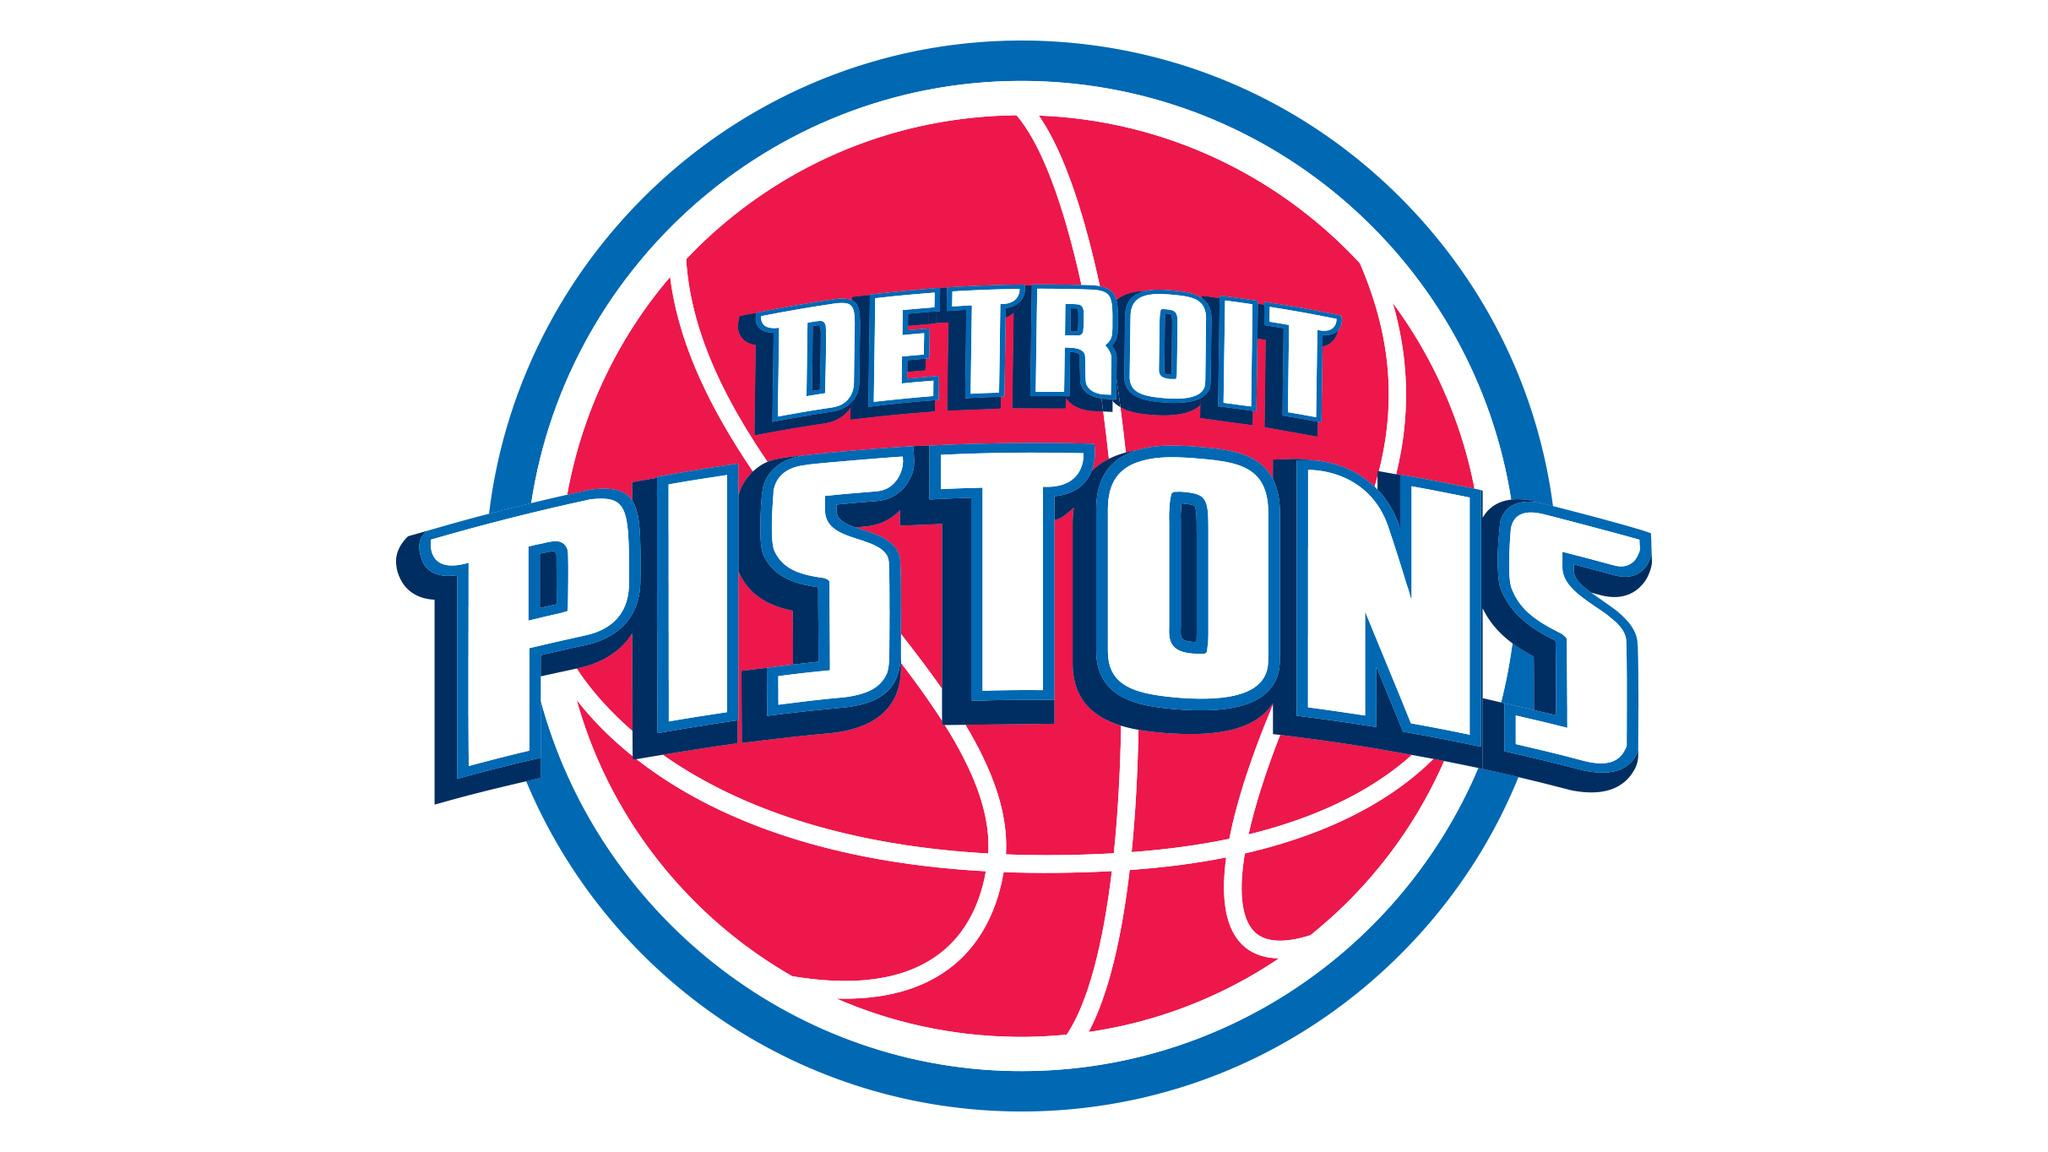 Detroit Pistons v LA Clippers at The Palace of Auburn Hills